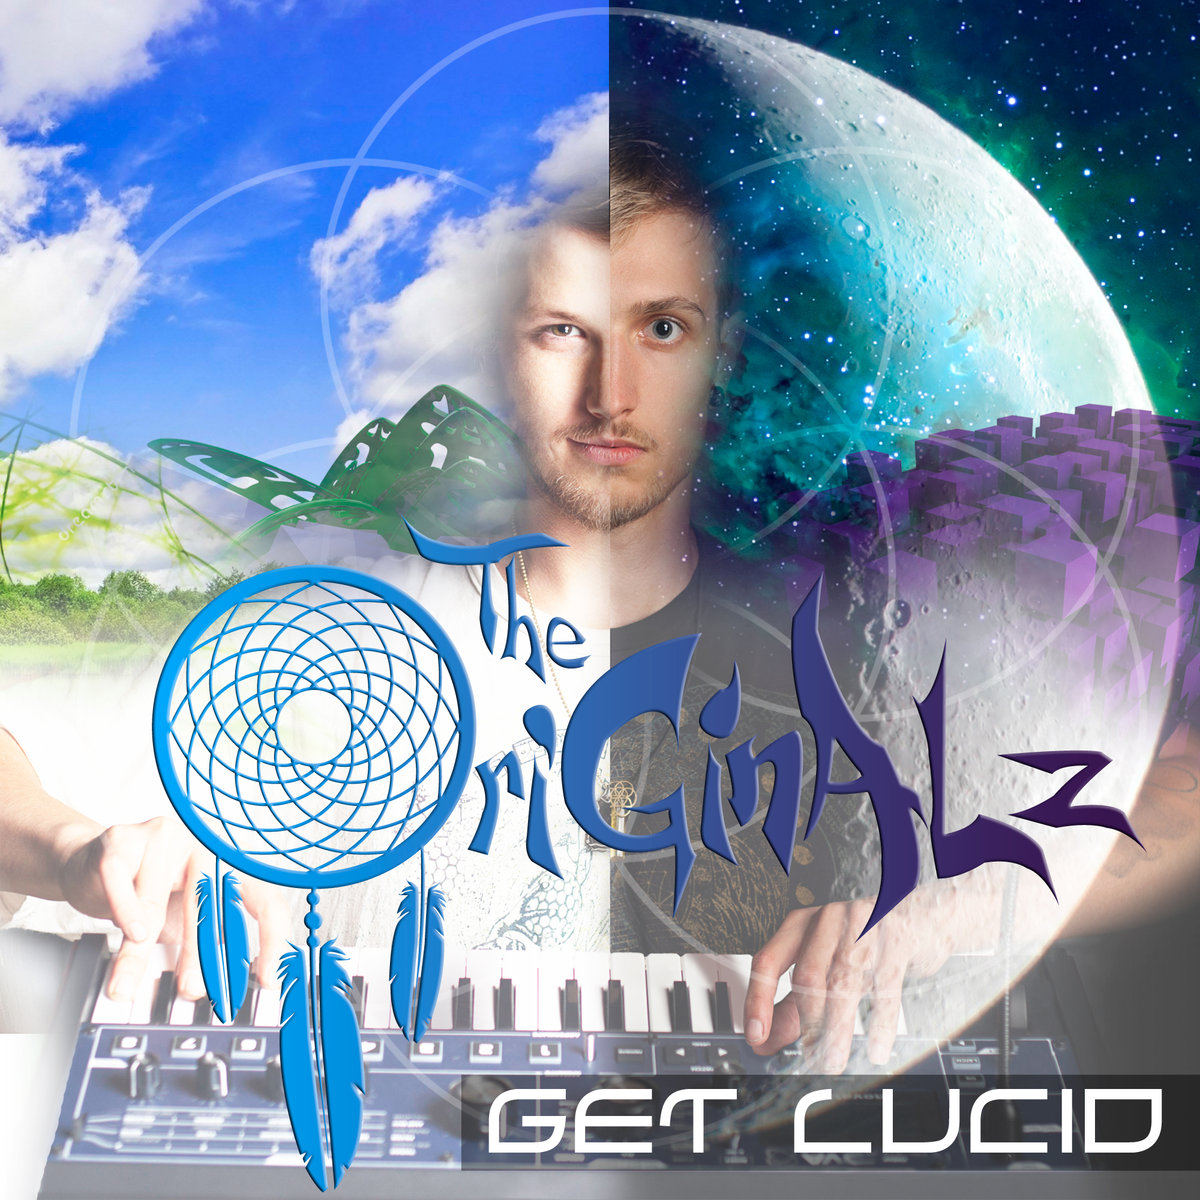 The OriGinALz - City Skylights @ 'Get Lucid' album (Austin)